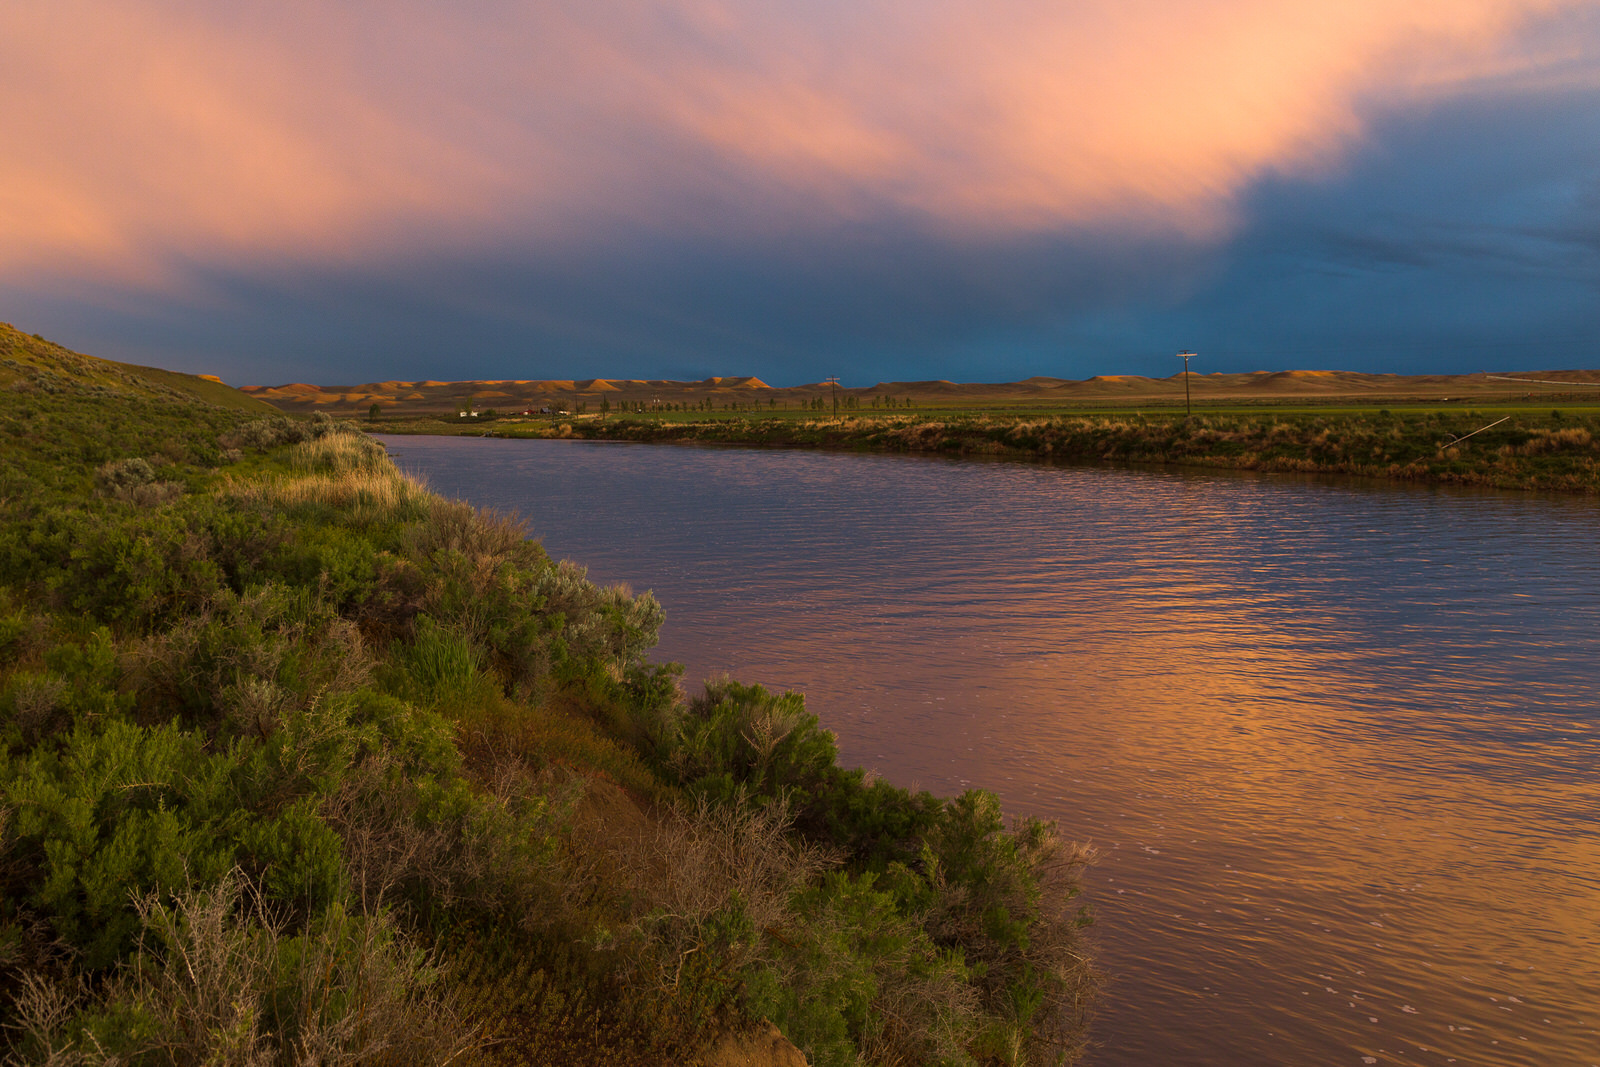 Eerie light over the Owyhee River near Rome, Oregon